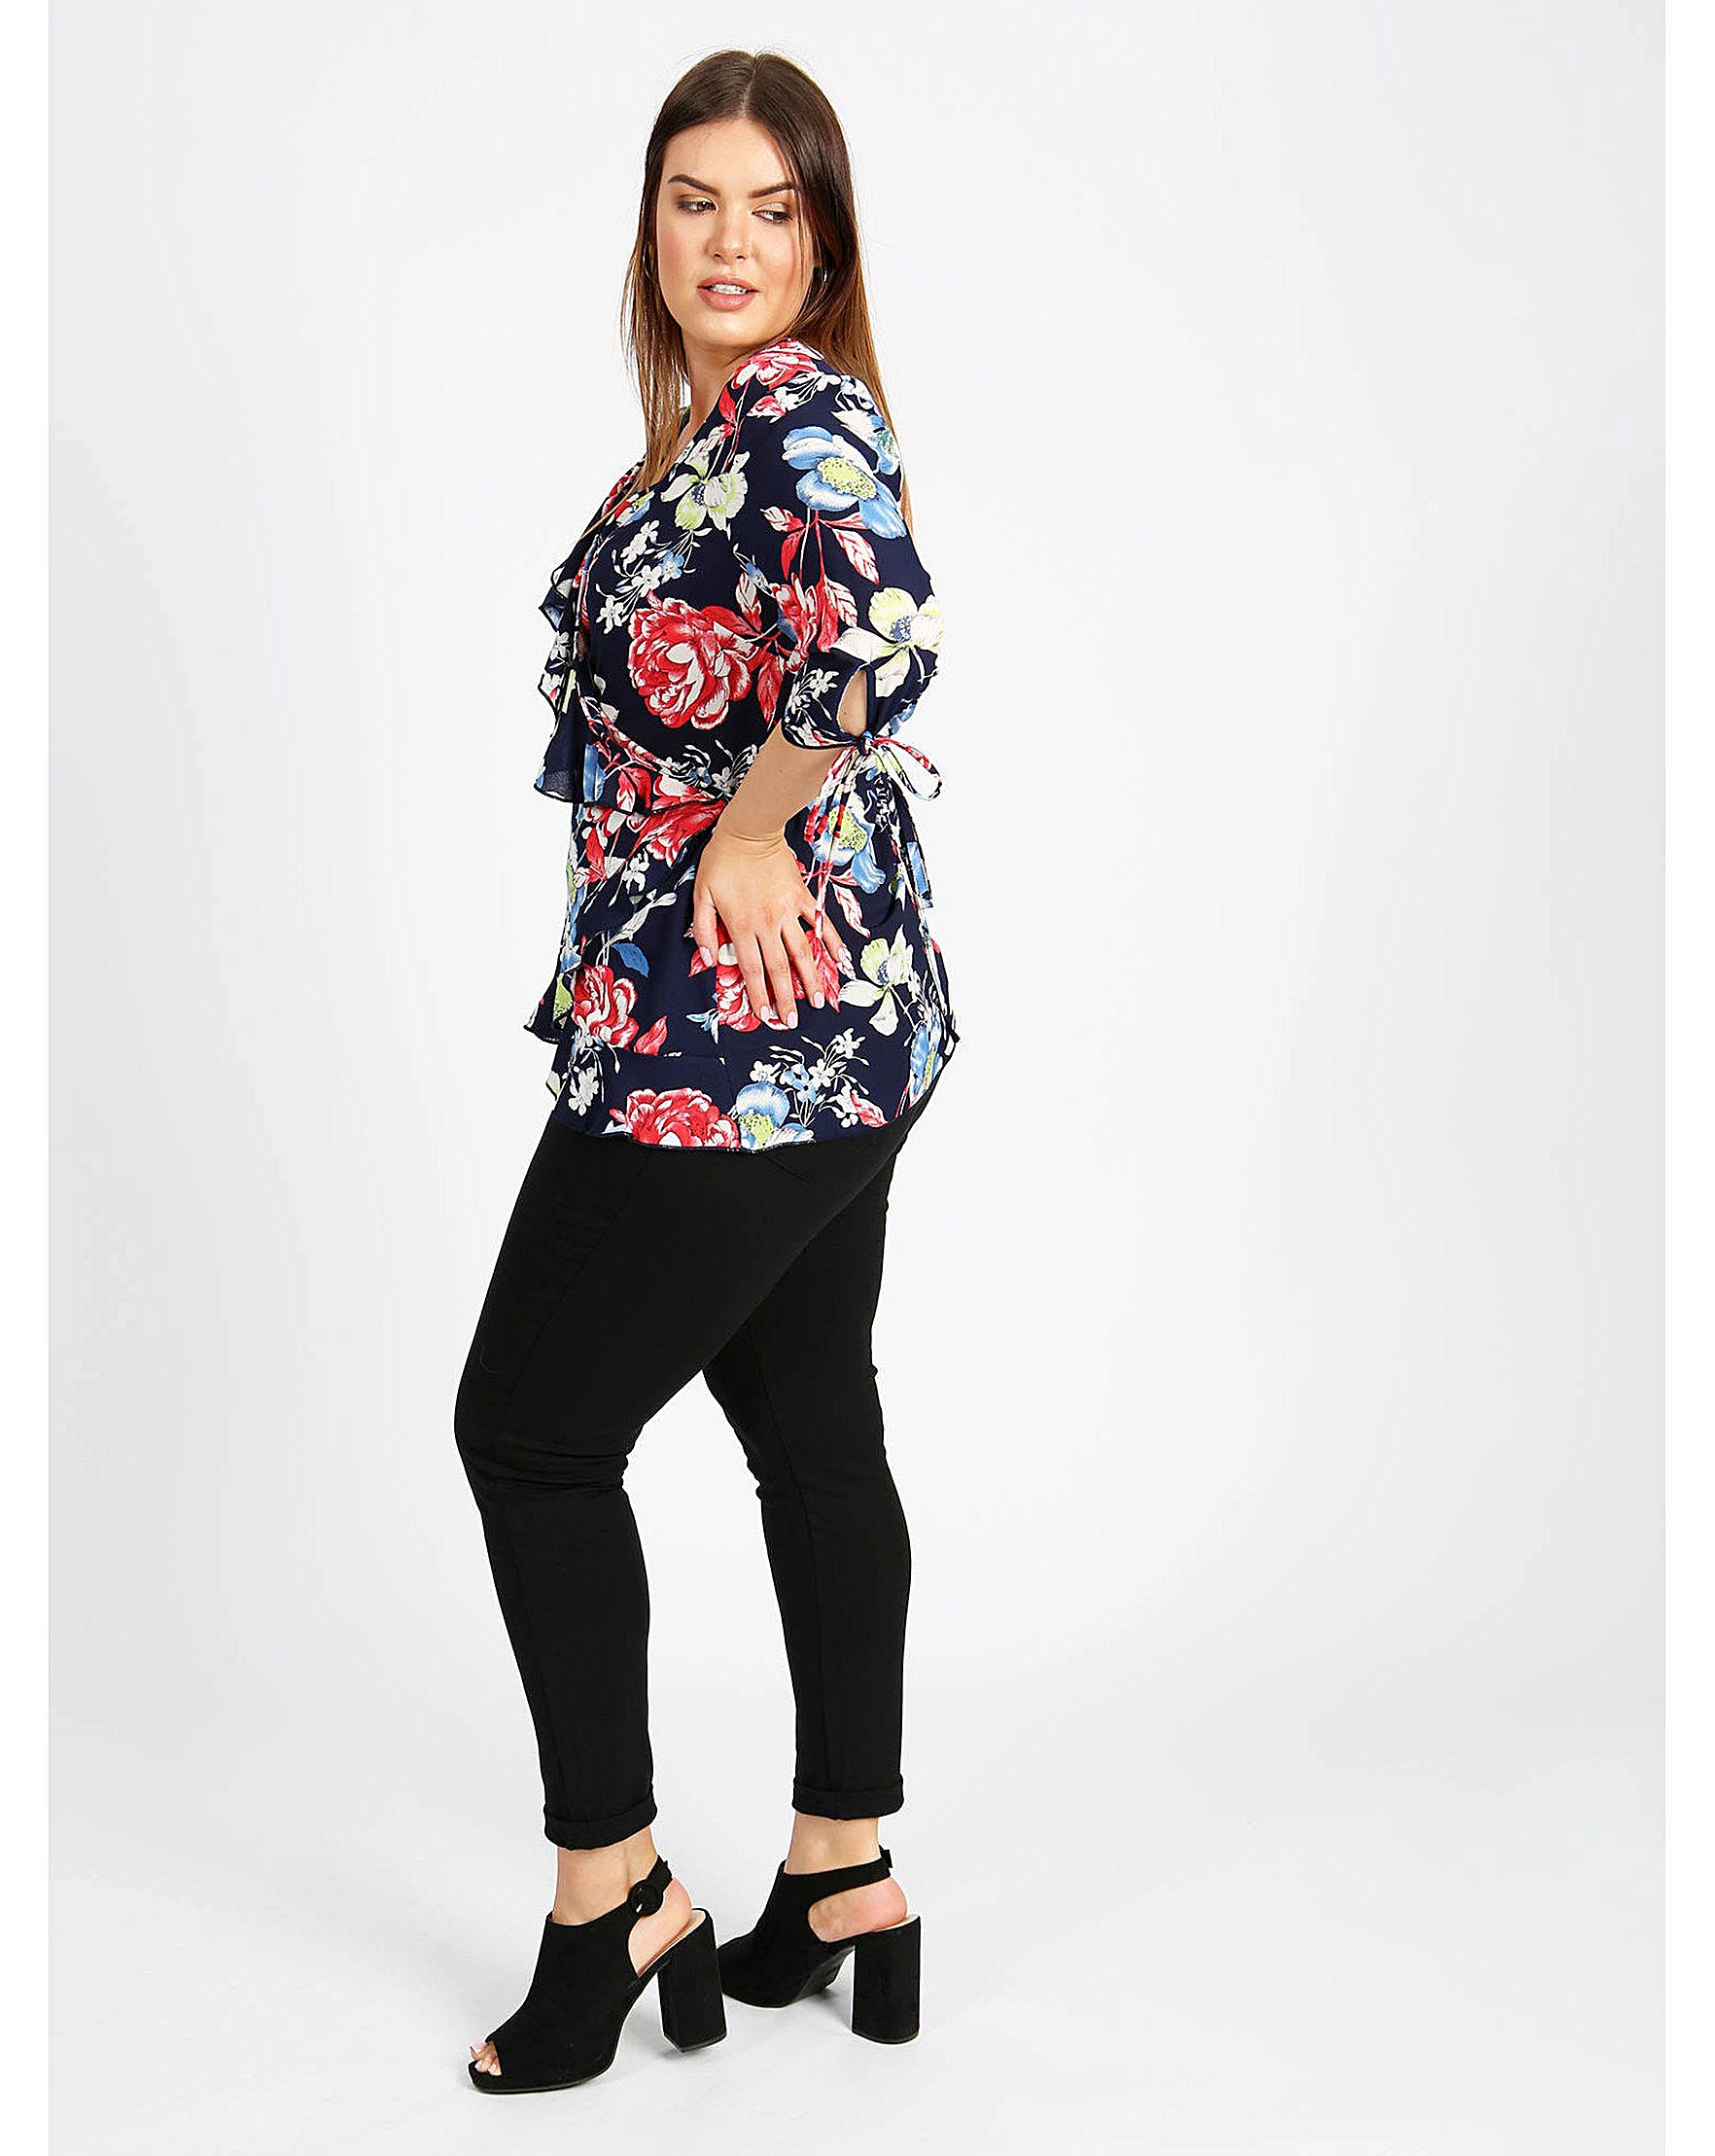 edd659b0d0 Lovedrobe GB Navy Floral Print Wrap Top